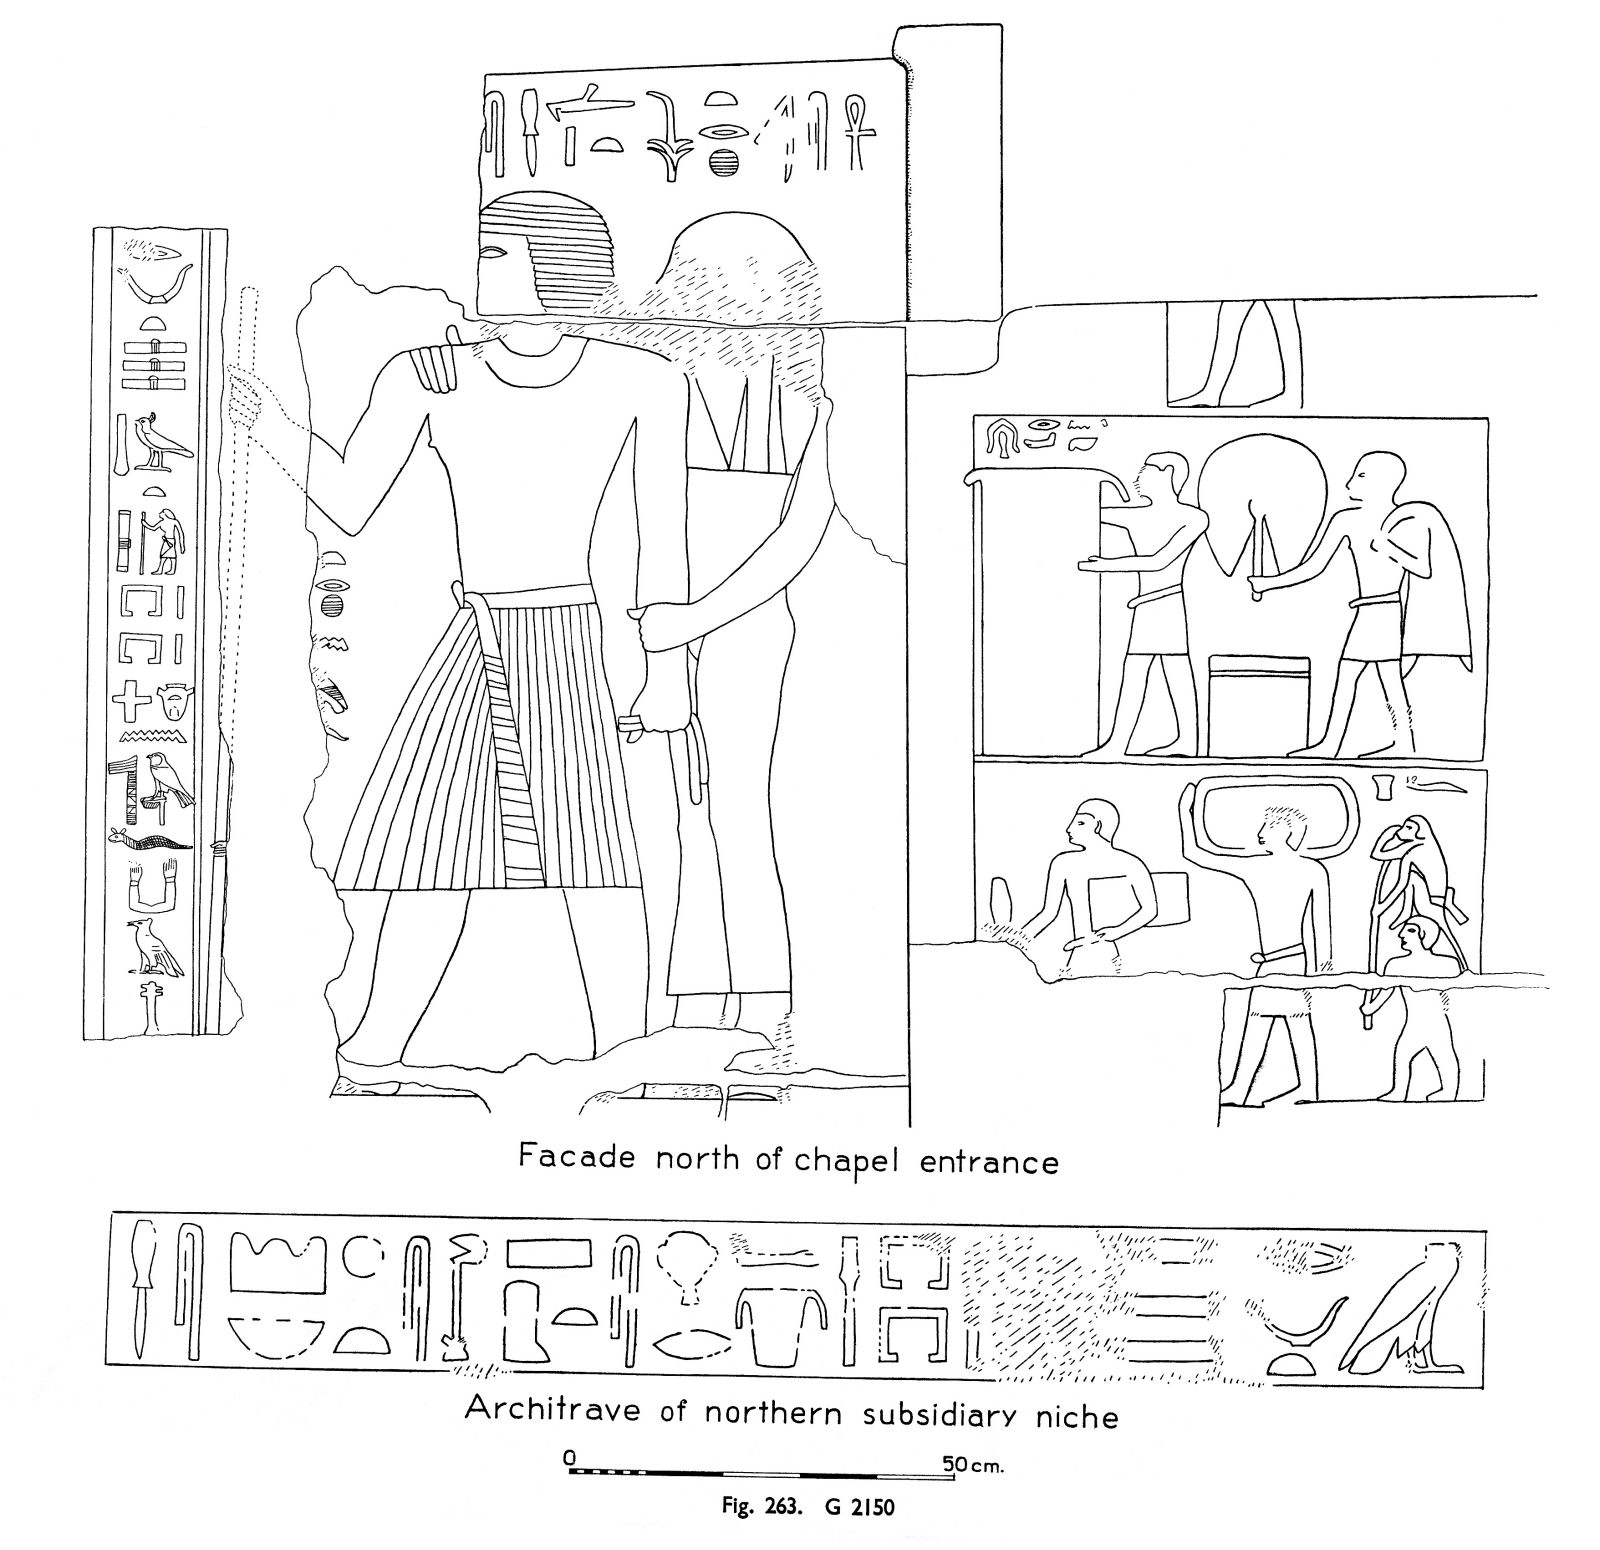 Drawings: G 2150: relief from facade, N of chapel entrance; and northern subsidiary niche, architrace